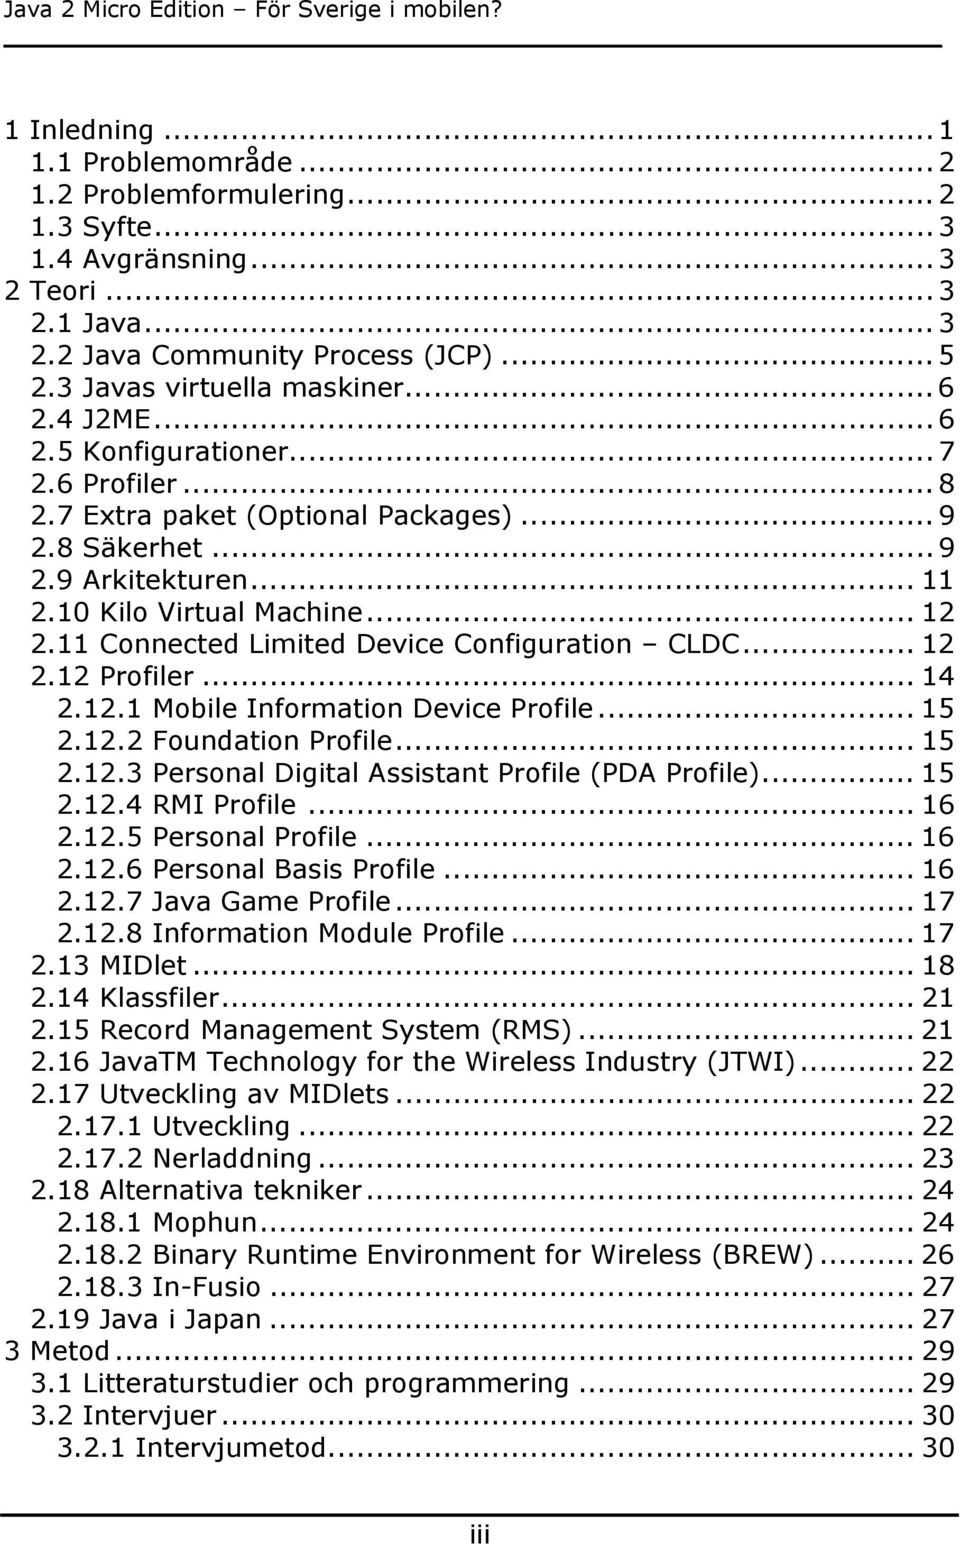 11 Connected Limited Device Configuration CLDC... 12 2.12 Profiler... 14 2.12.1 Mobile Information Device Profile... 15 2.12.2 Foundation Profile... 15 2.12.3 Personal Digital Assistant Profile (PDA Profile).